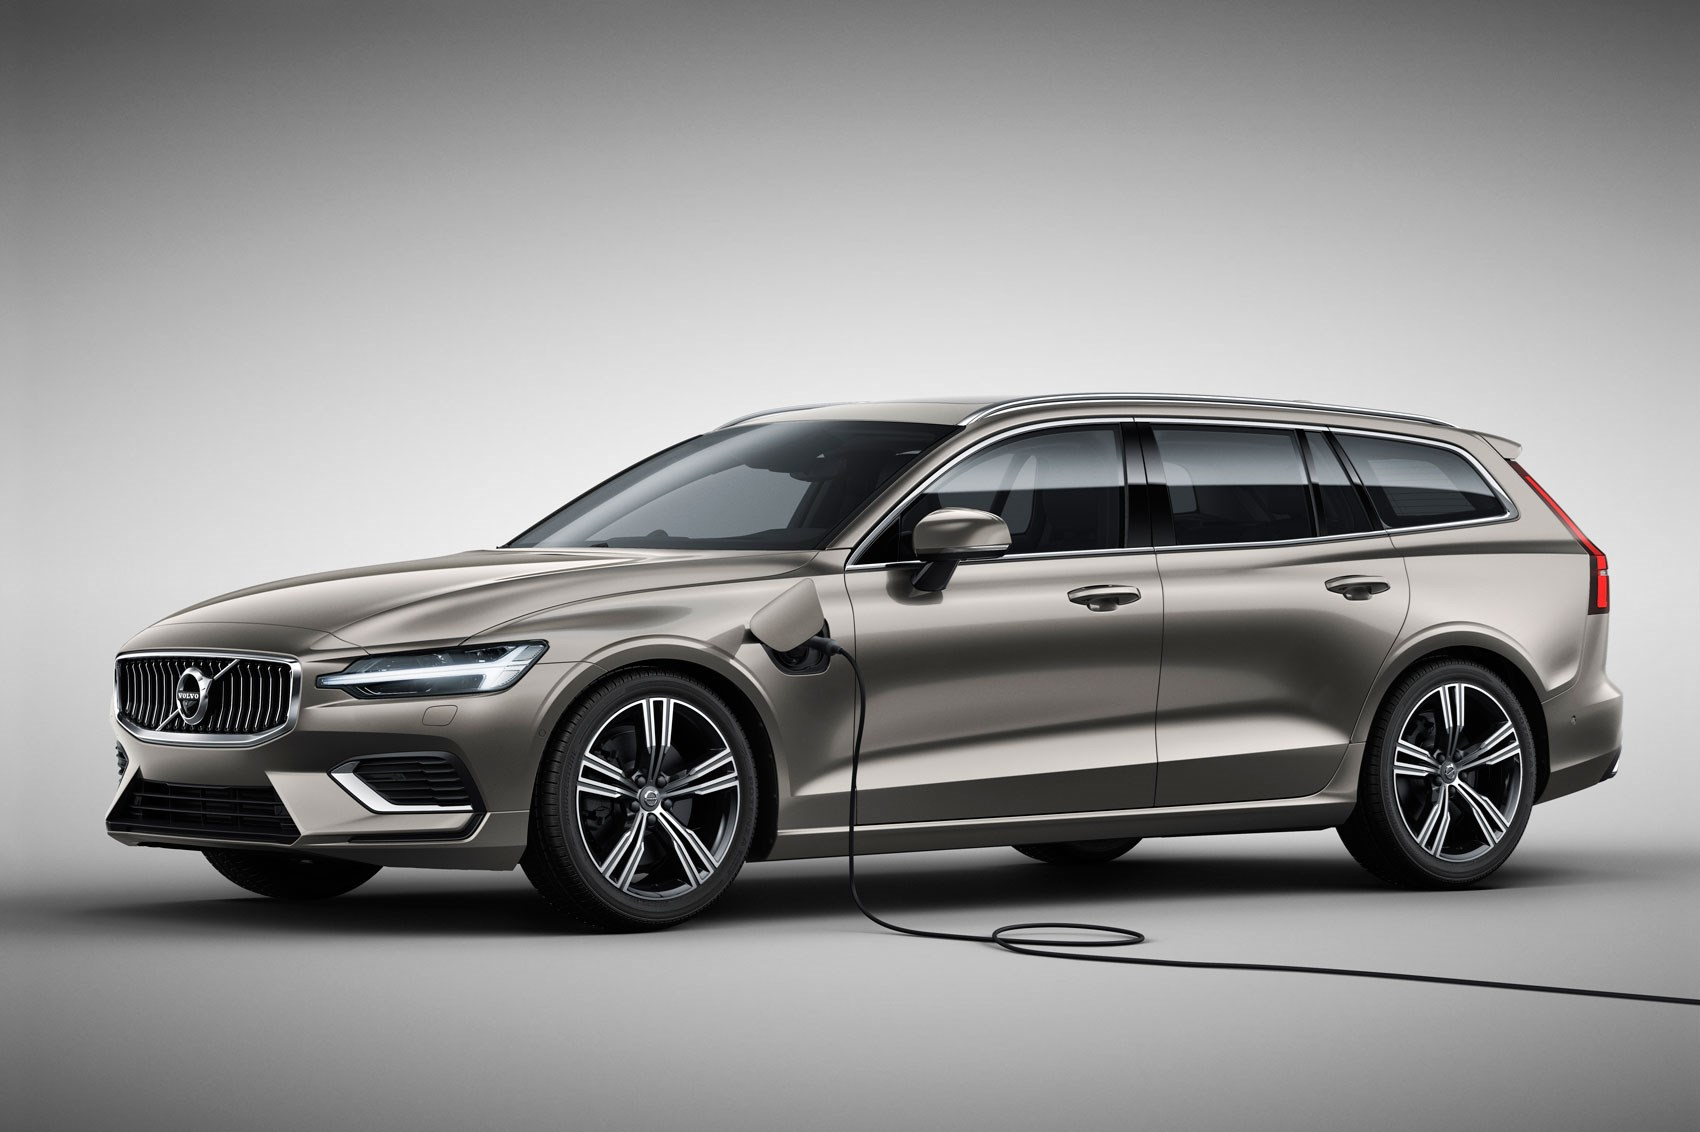 Volvo V60 2018 Release Date >> Volvo V60 estate (2018): interior, UK price and release date | CAR Magazine